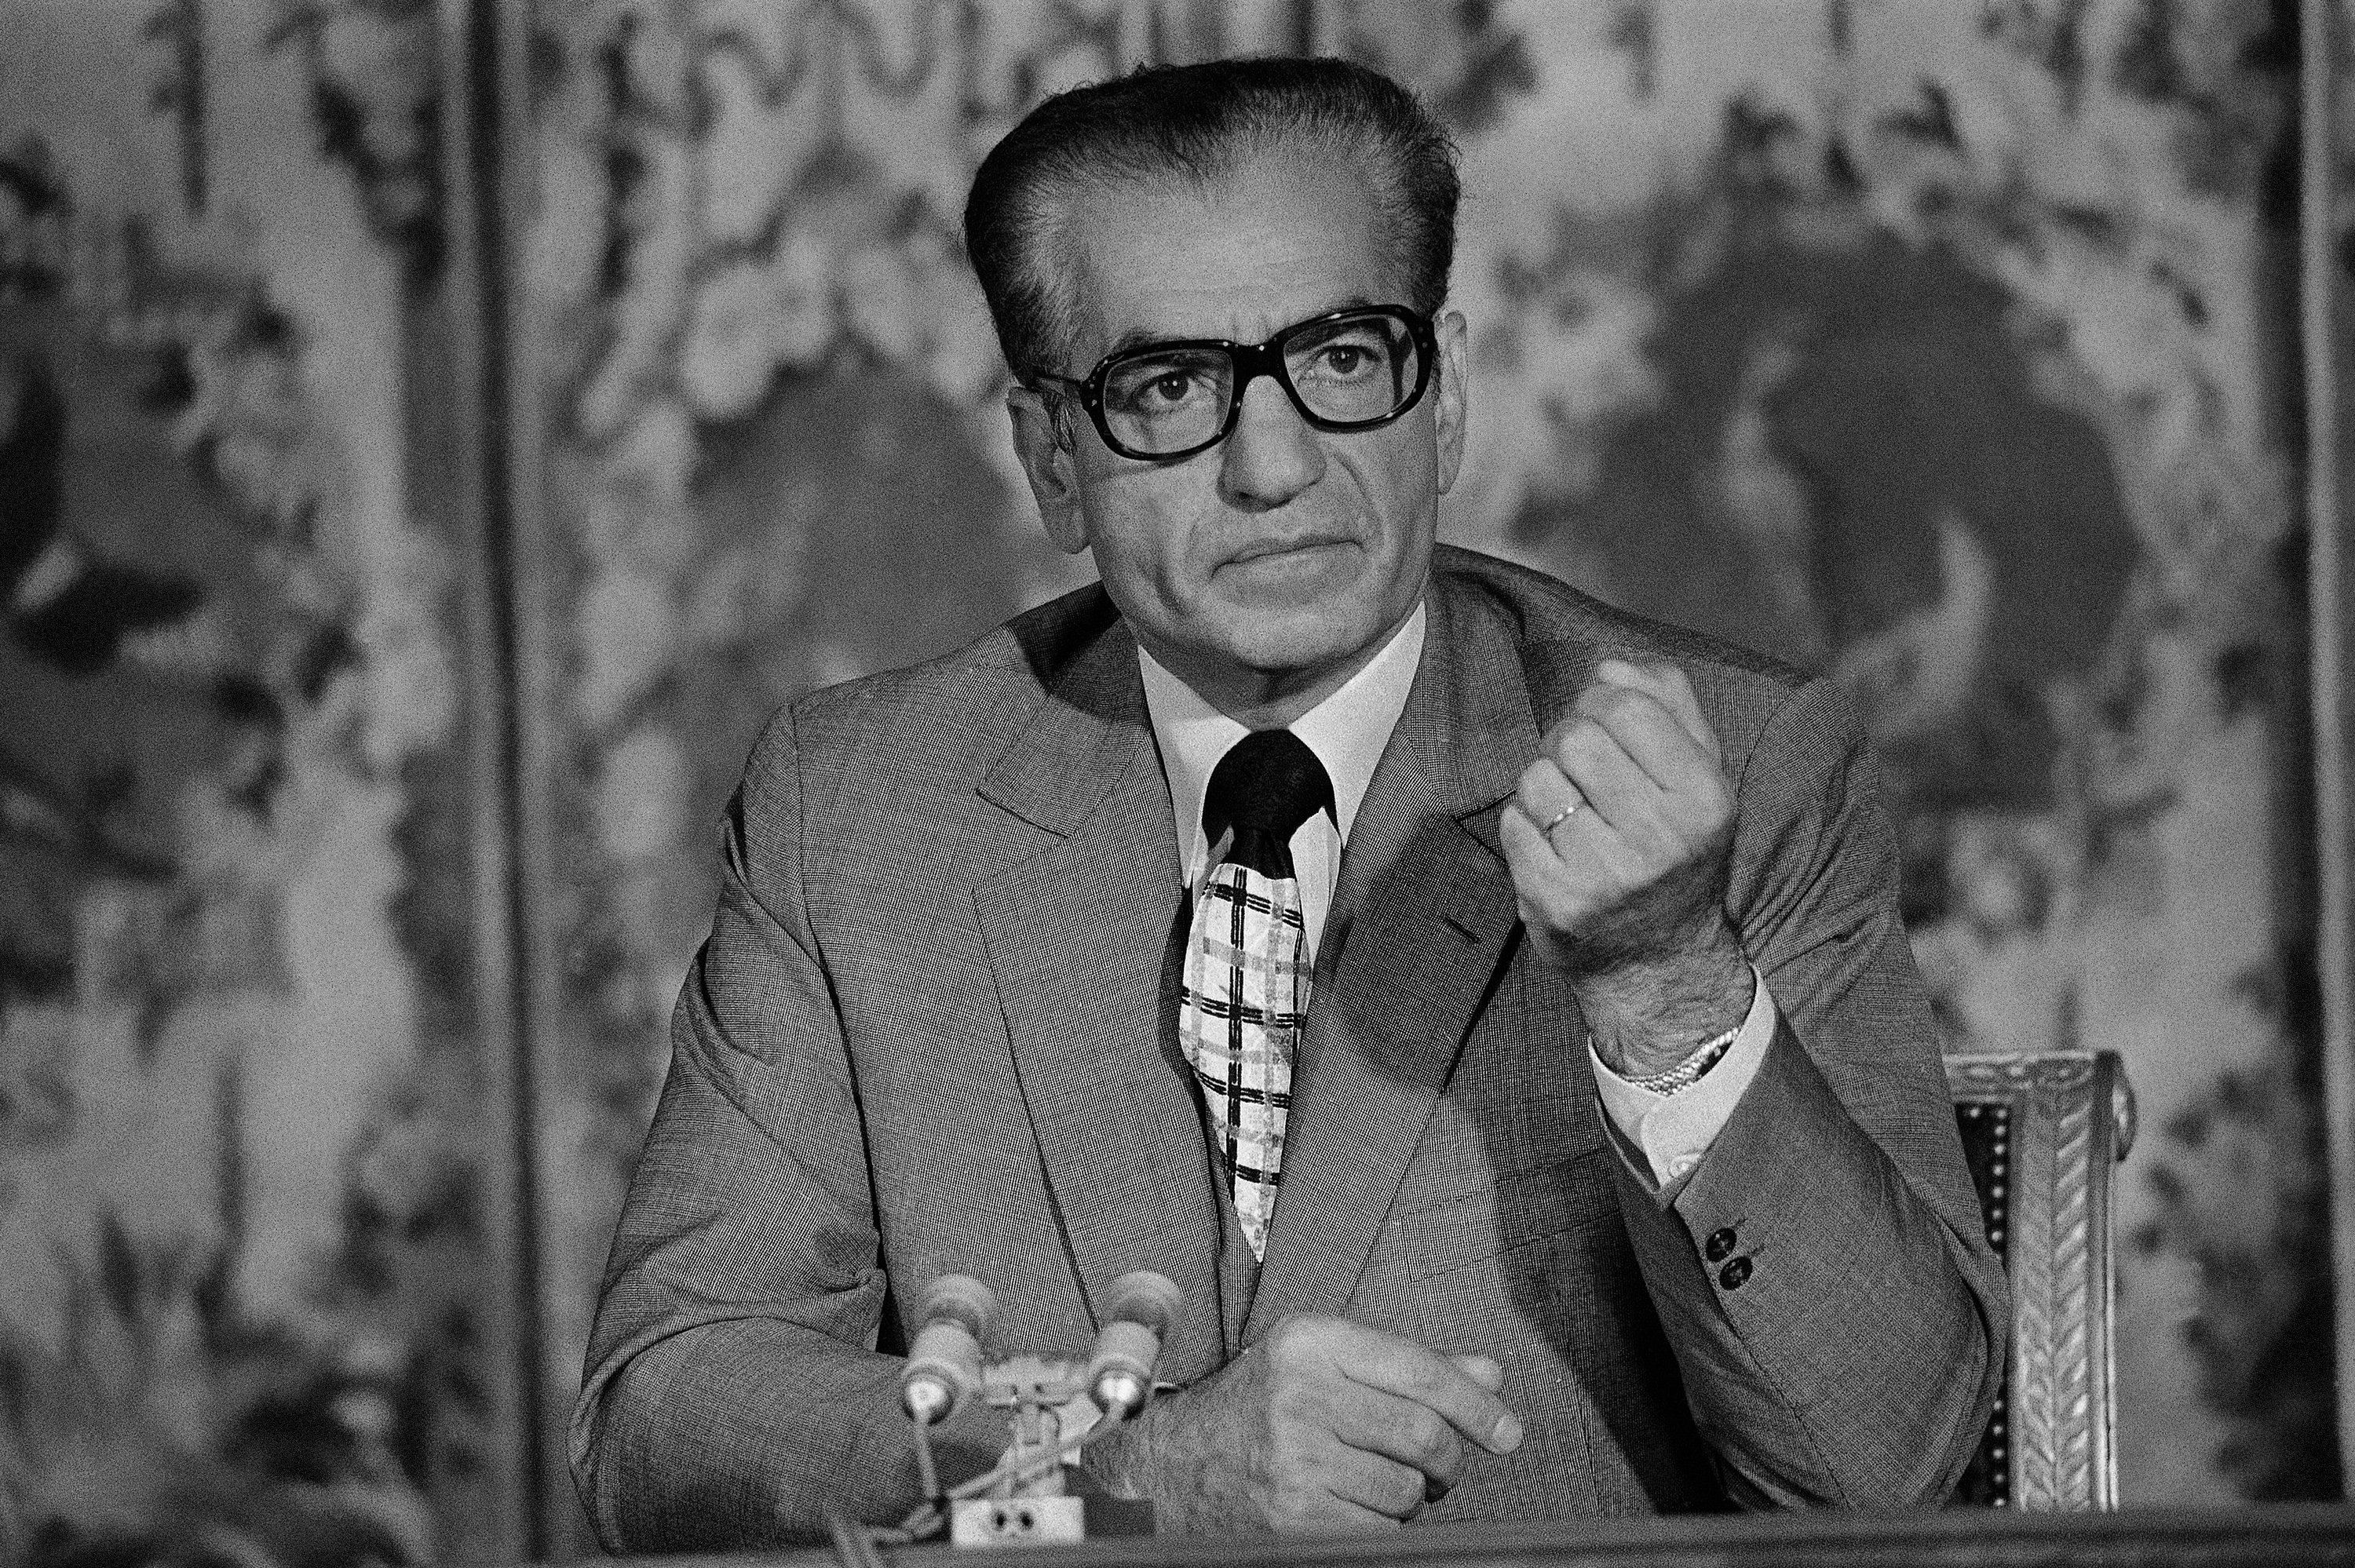 The Shah of Iran, Mohammad Reza Pahlavi, gestures during a press conference at the Trianon in Versailles, near Paris, France on June 27, 1974.